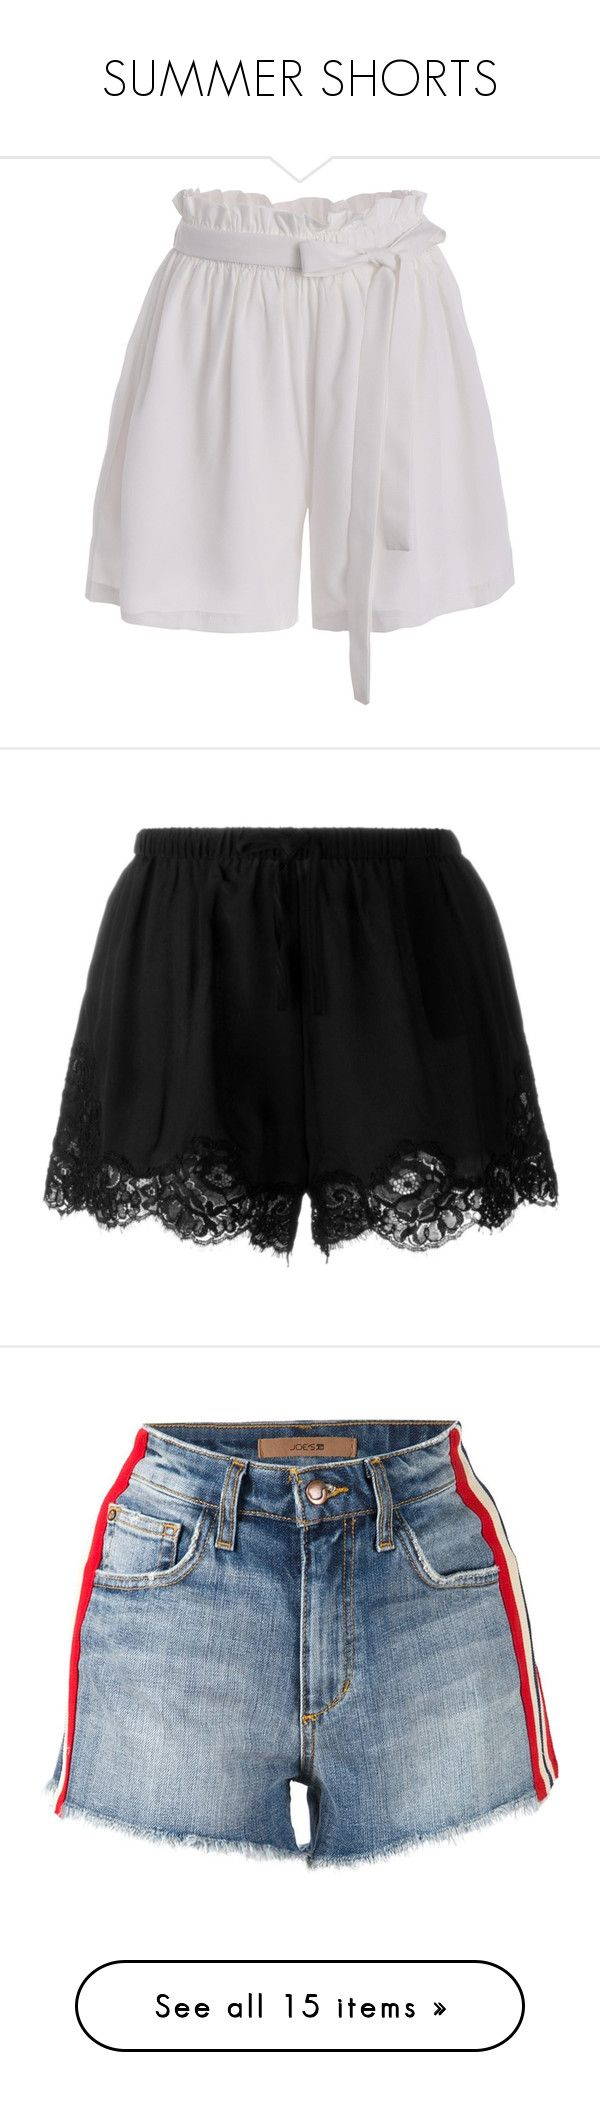 """""""SUMMER SHORTS"""" by woodsenlikethis ❤ liked on Polyvore featuring clothes, summershorts, shorts, bottoms, rosegal, culottes shorts, plus size shorts, womens plus size shorts, plus size culottes and pants"""